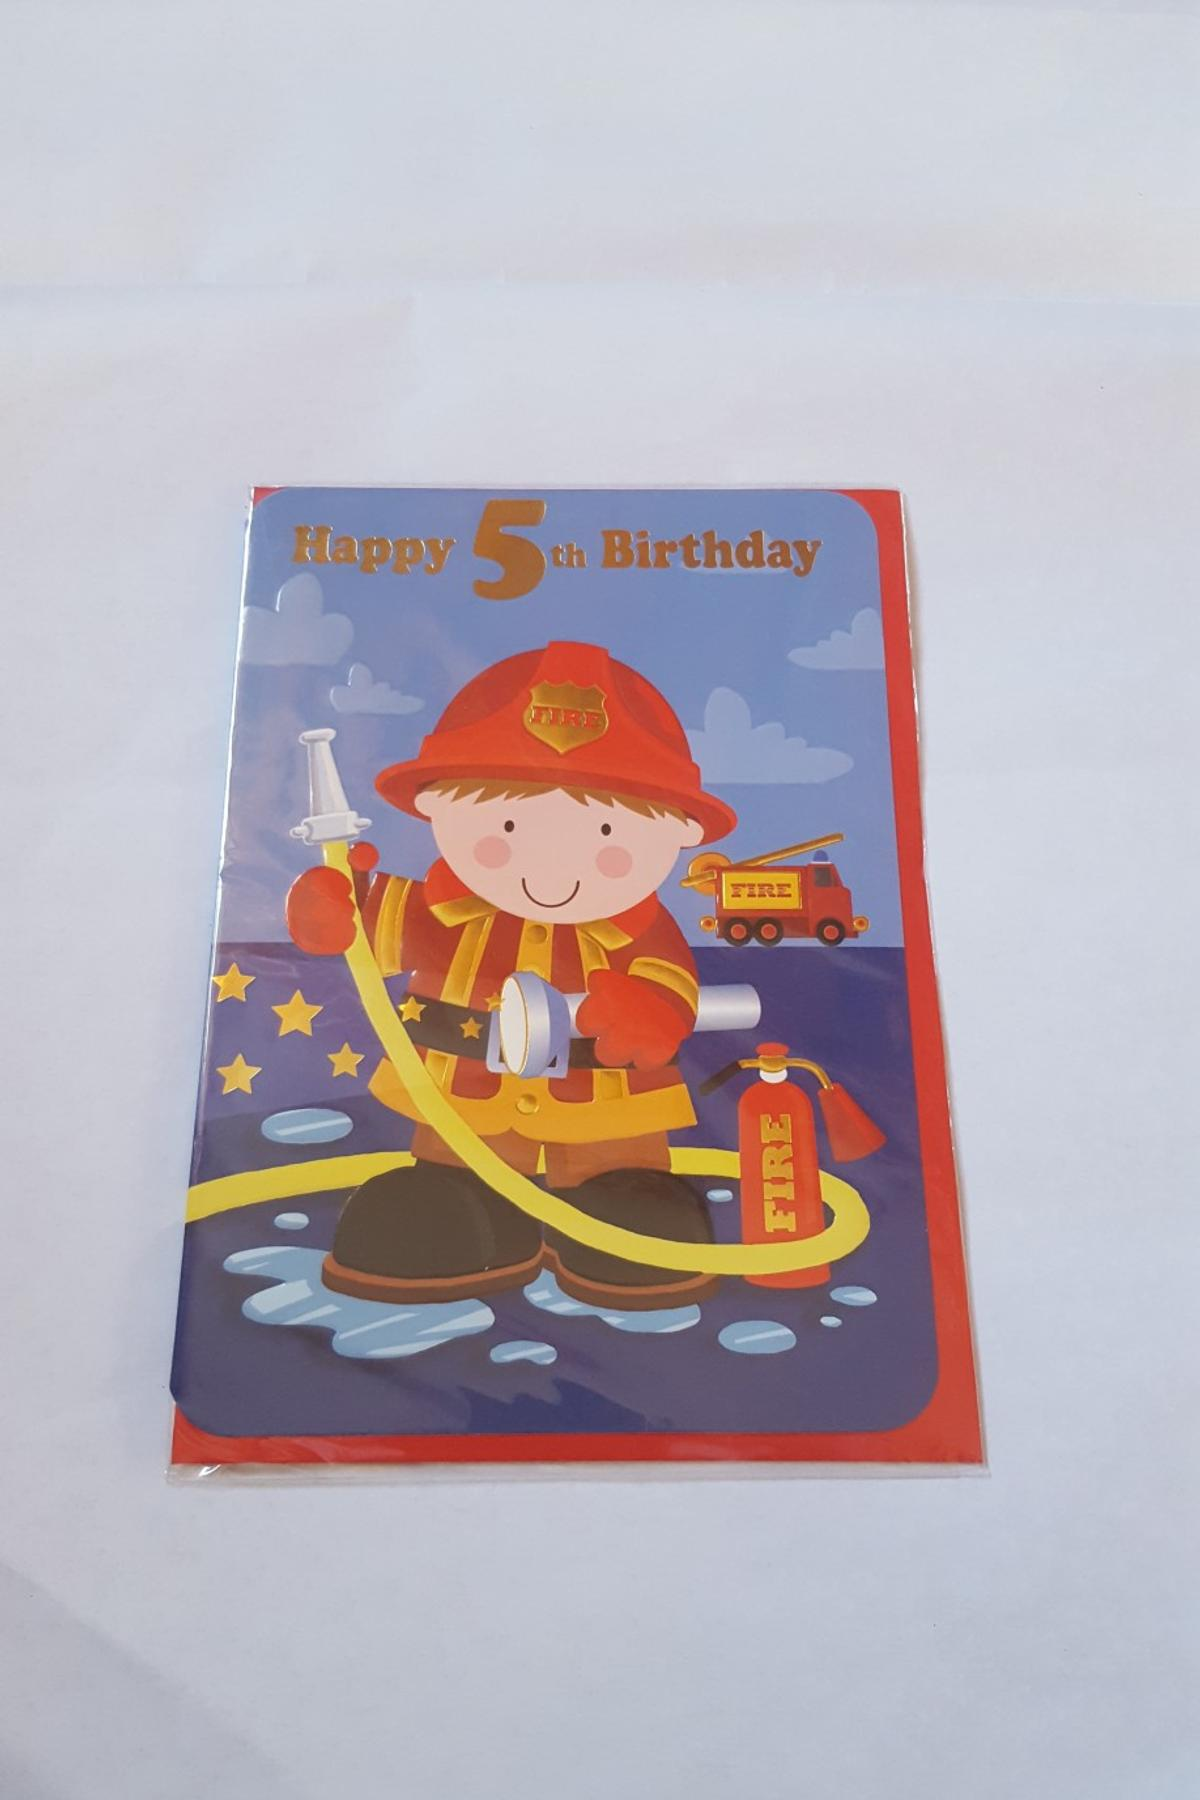 Description Boys Age 5 Birthday Card